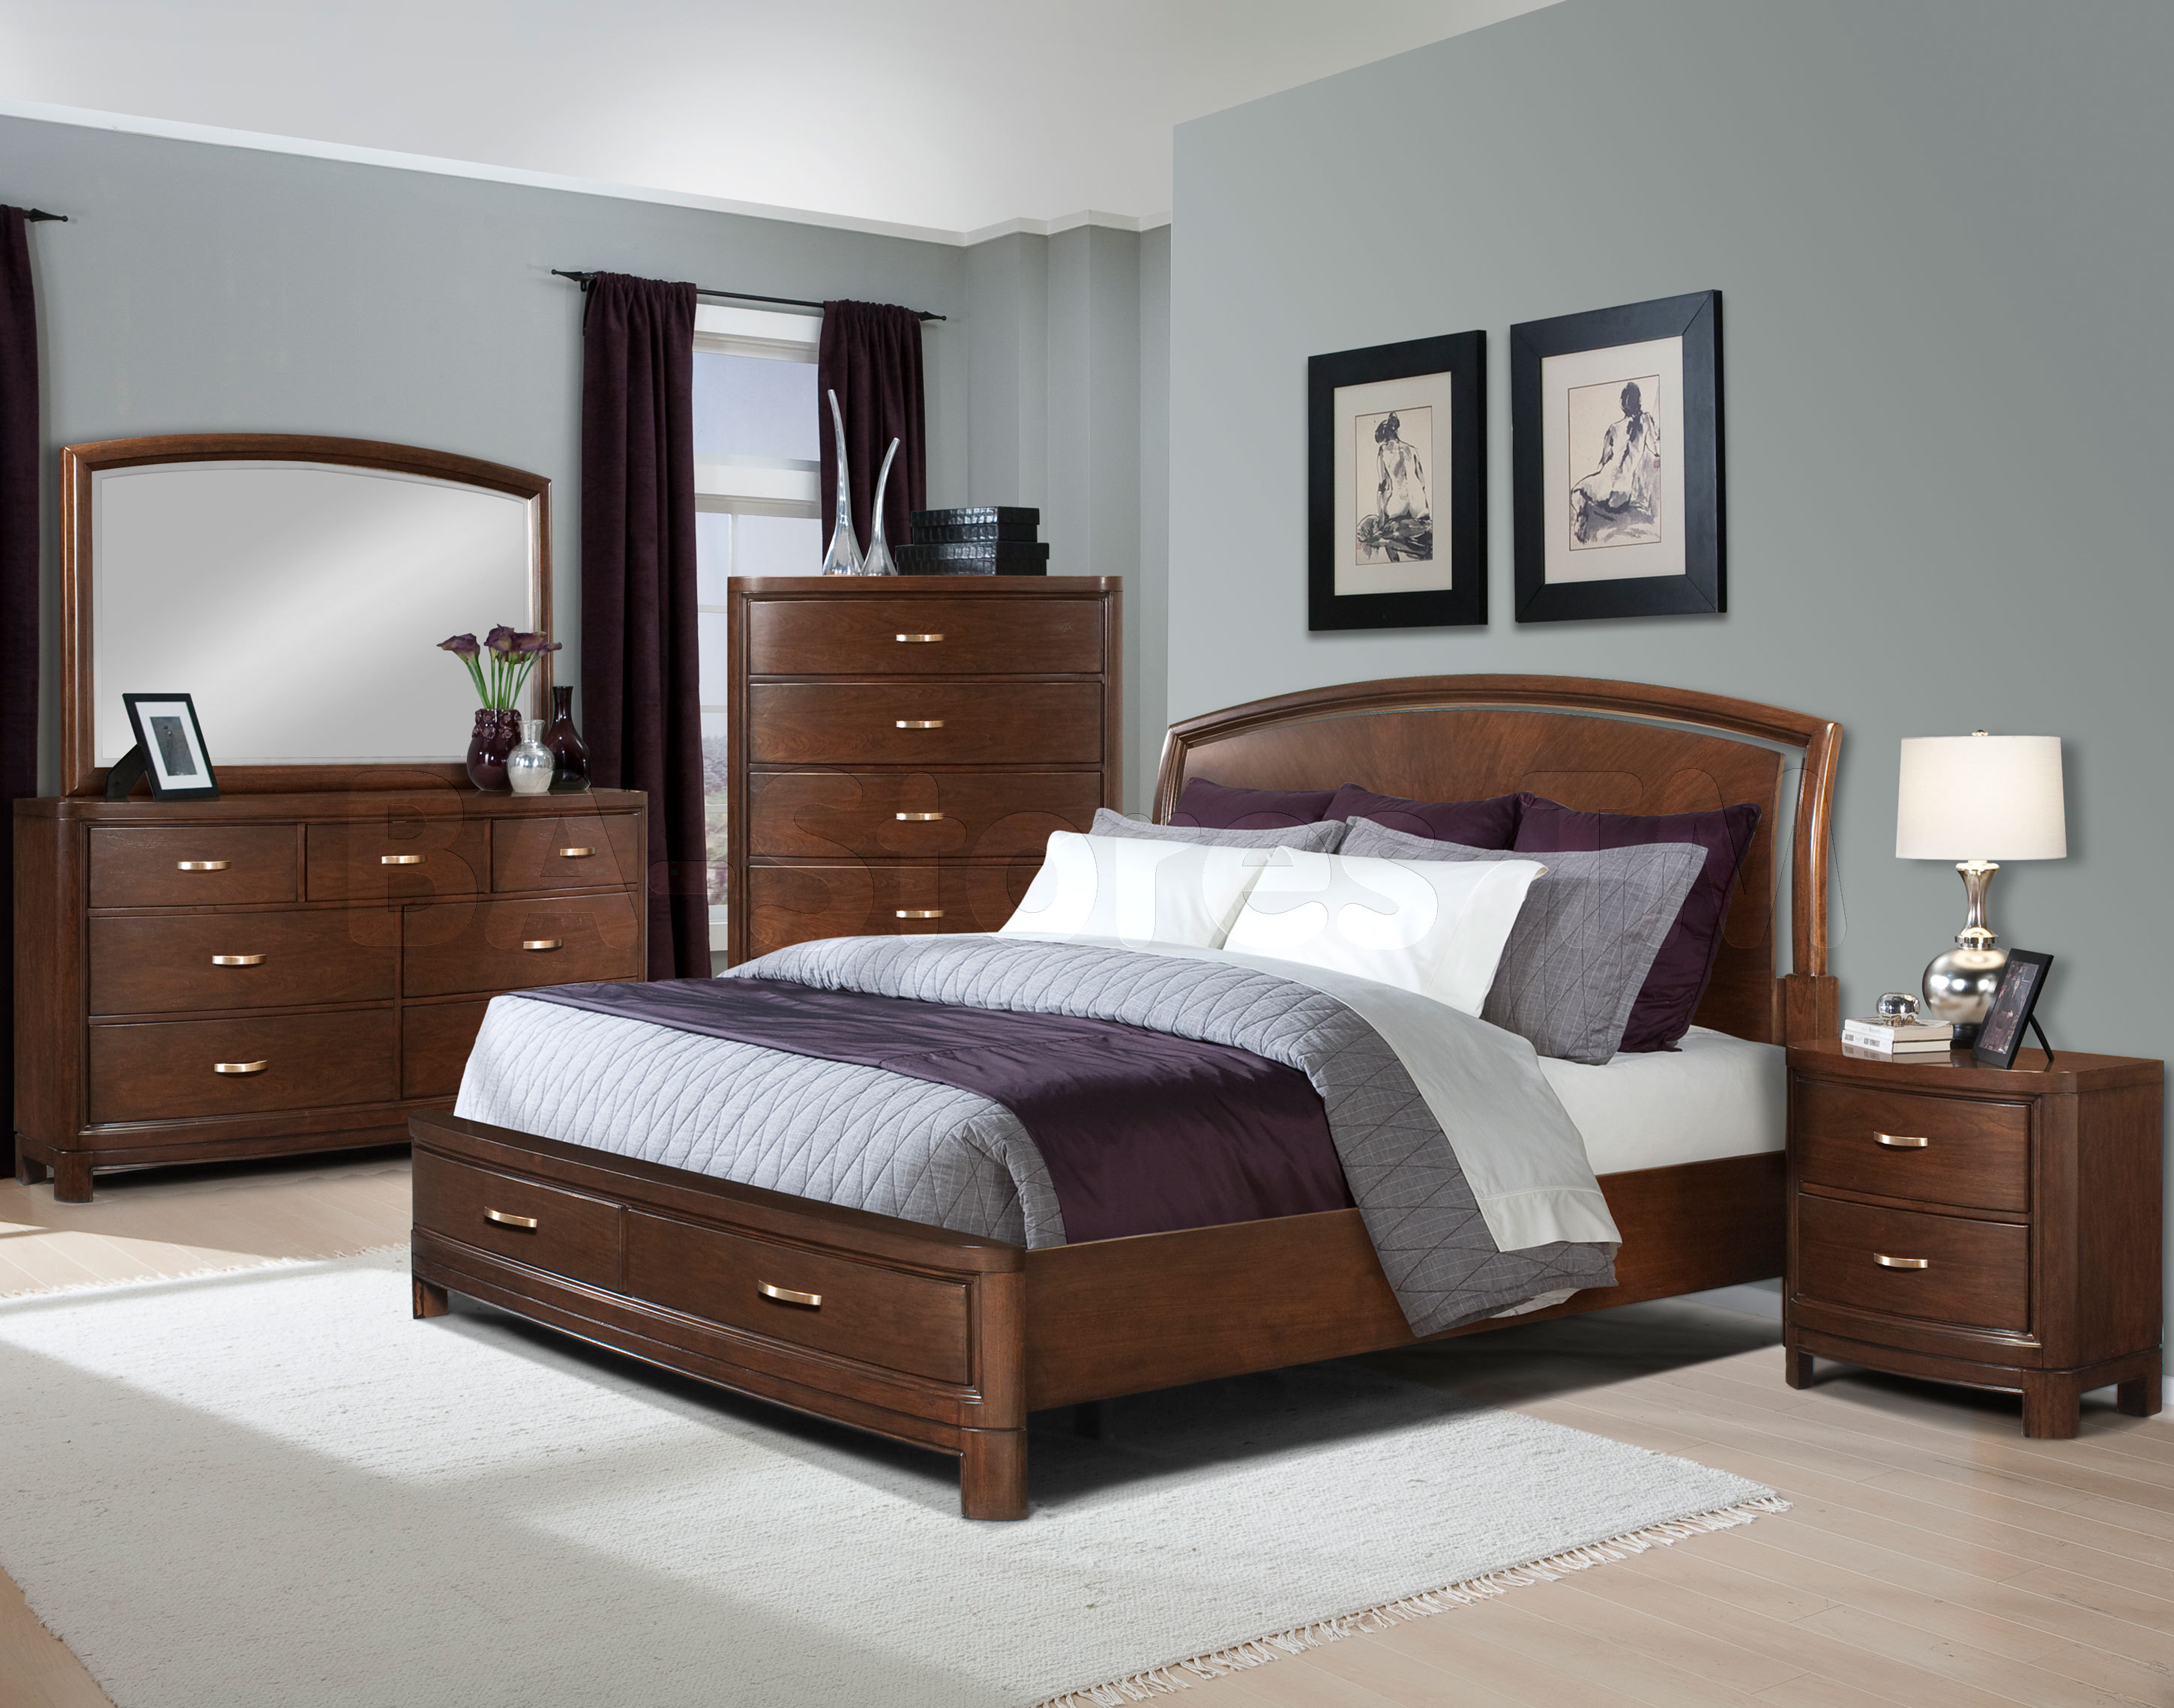 Image of: Bedroom Ideas With Brown Furniture Brooklyn Apartment